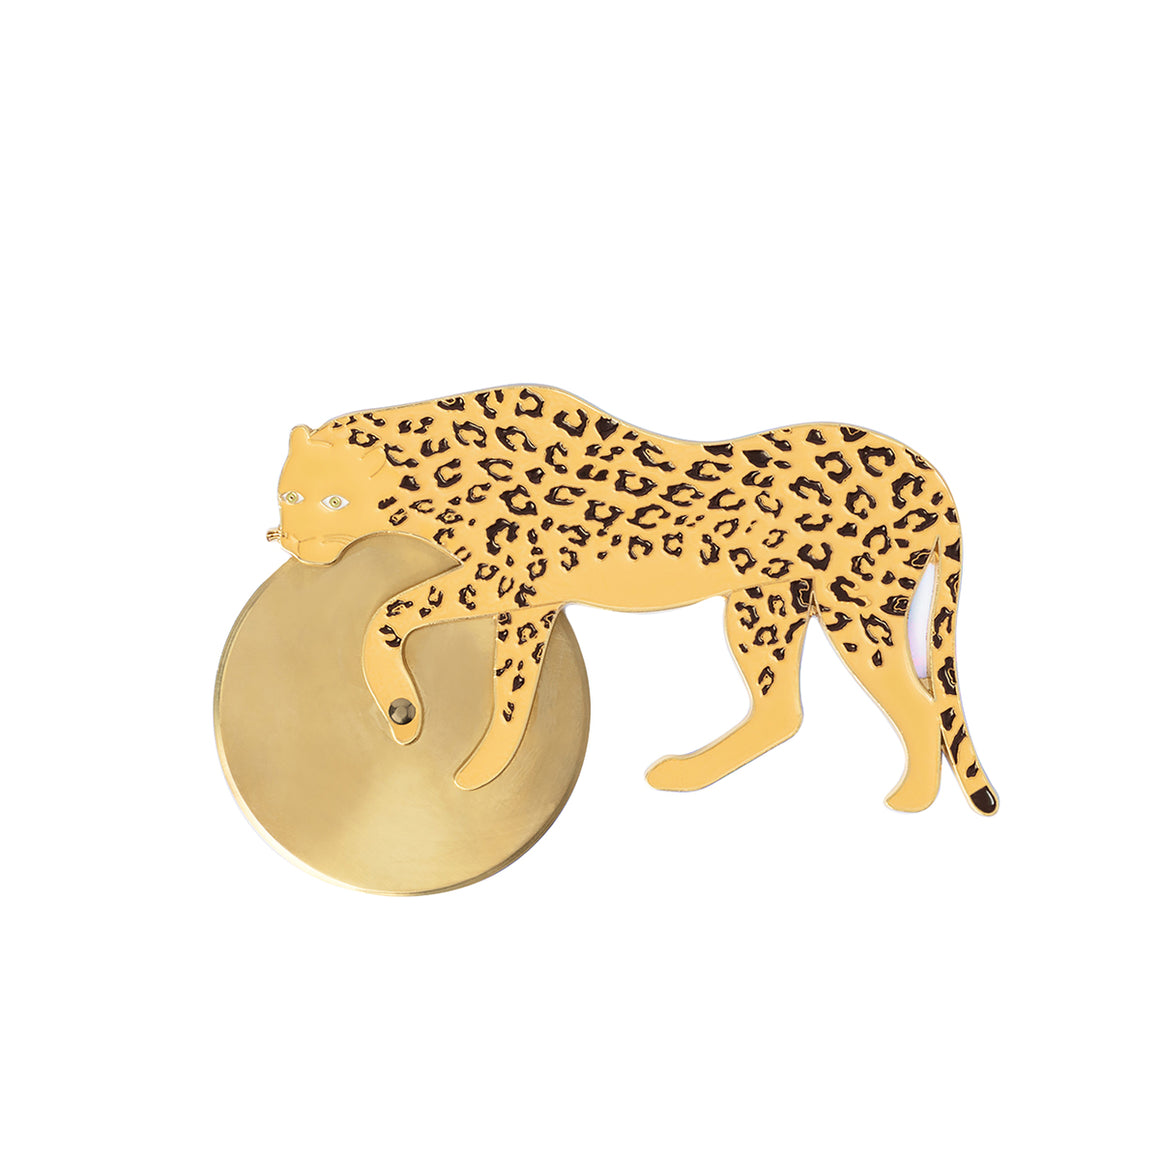 A pizza cutter in the shape of a Cheetah. A golden cutting wheel is attached to the cheetahs legs. The cheetah is a glossy yellow enamel on gold and used as the handle of the pizza cutter.